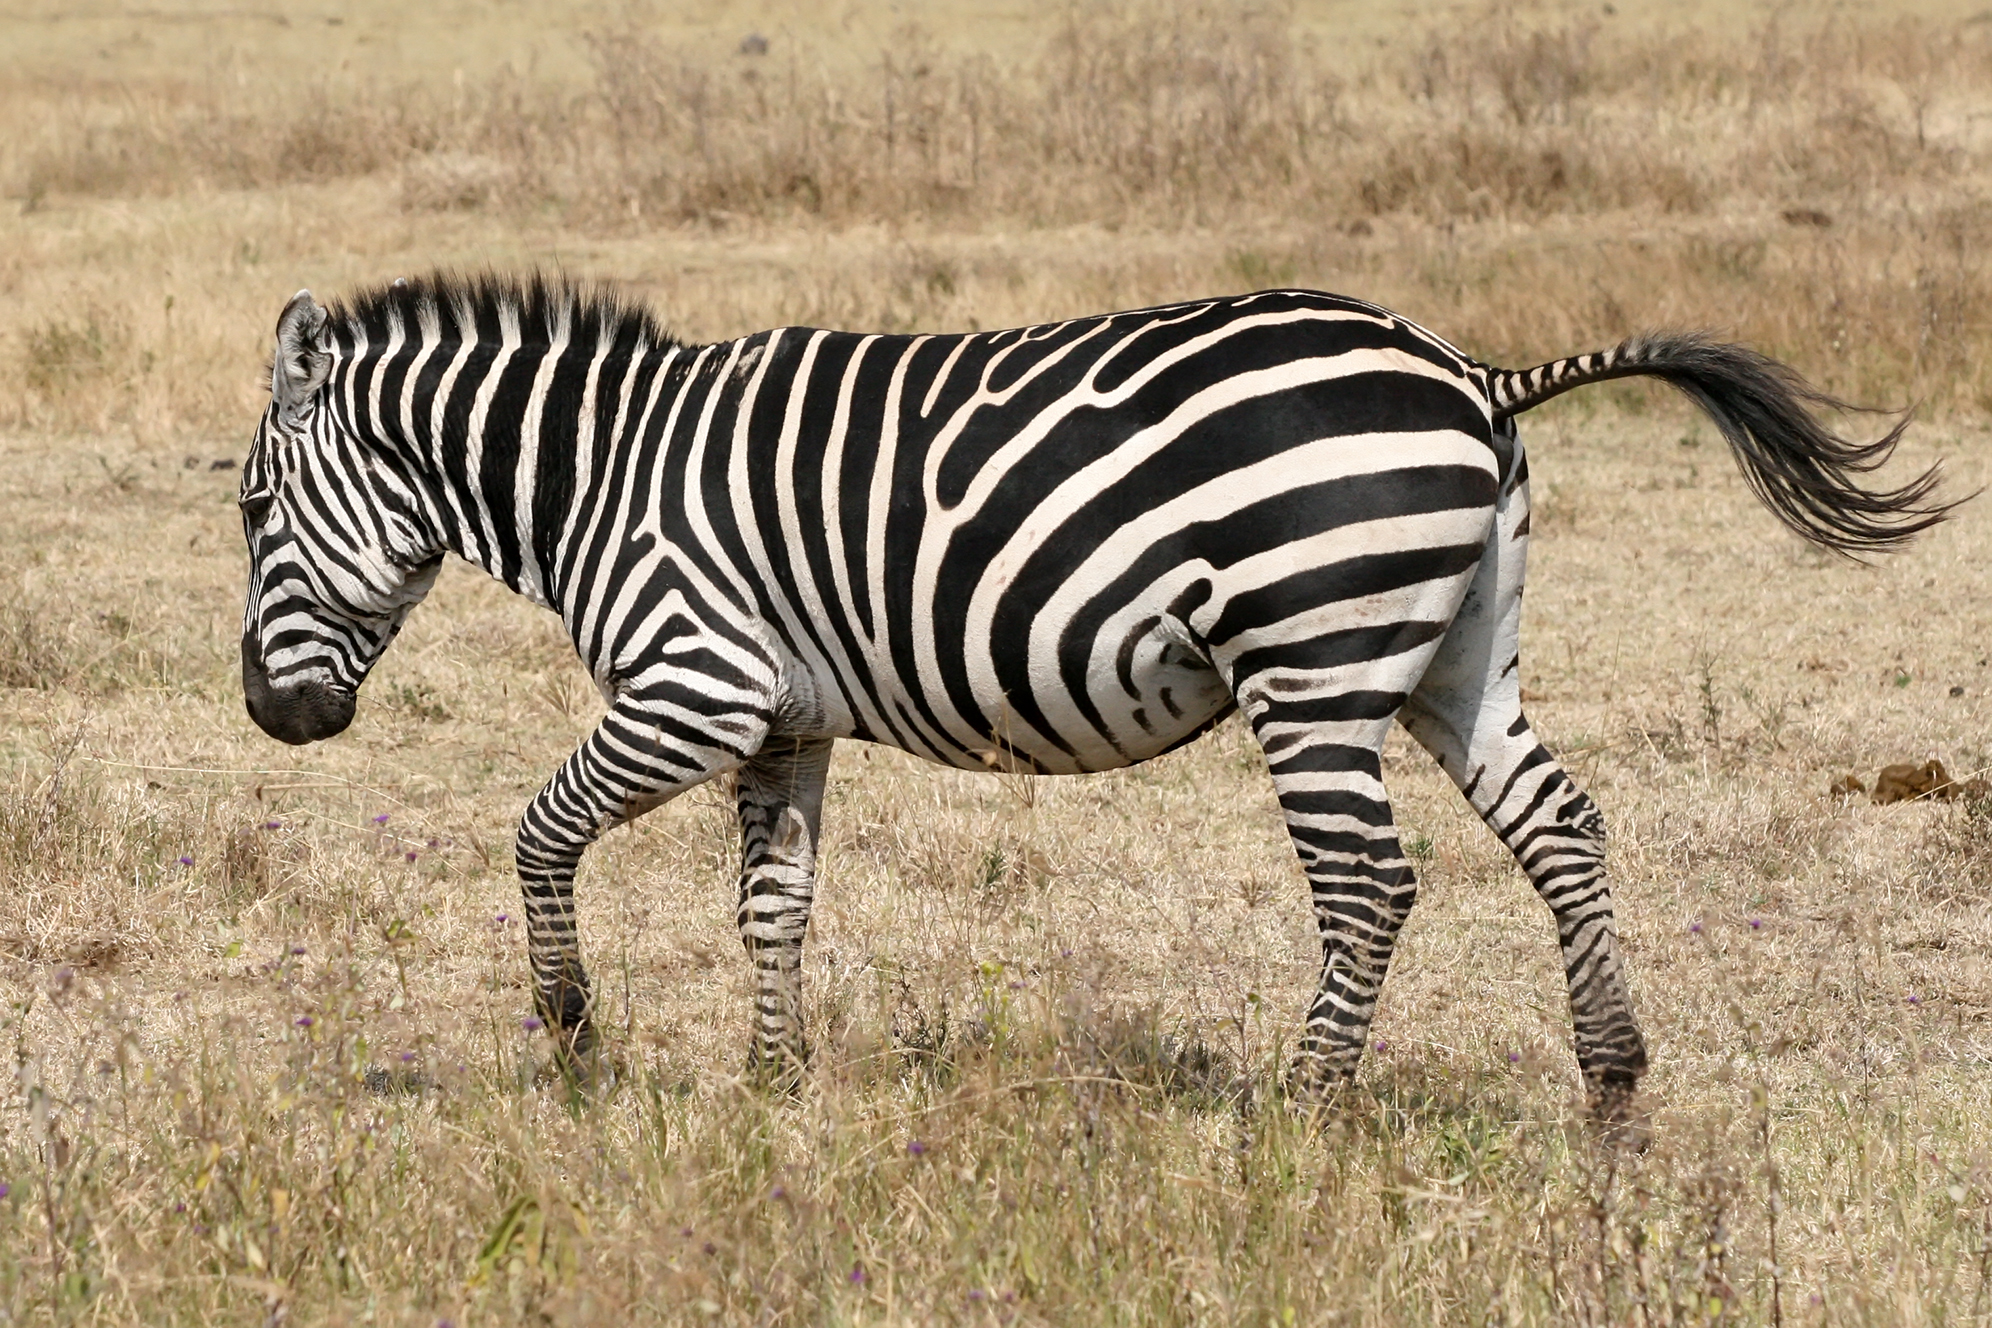 Colors images black and white zebra hd wallpaper and background photos